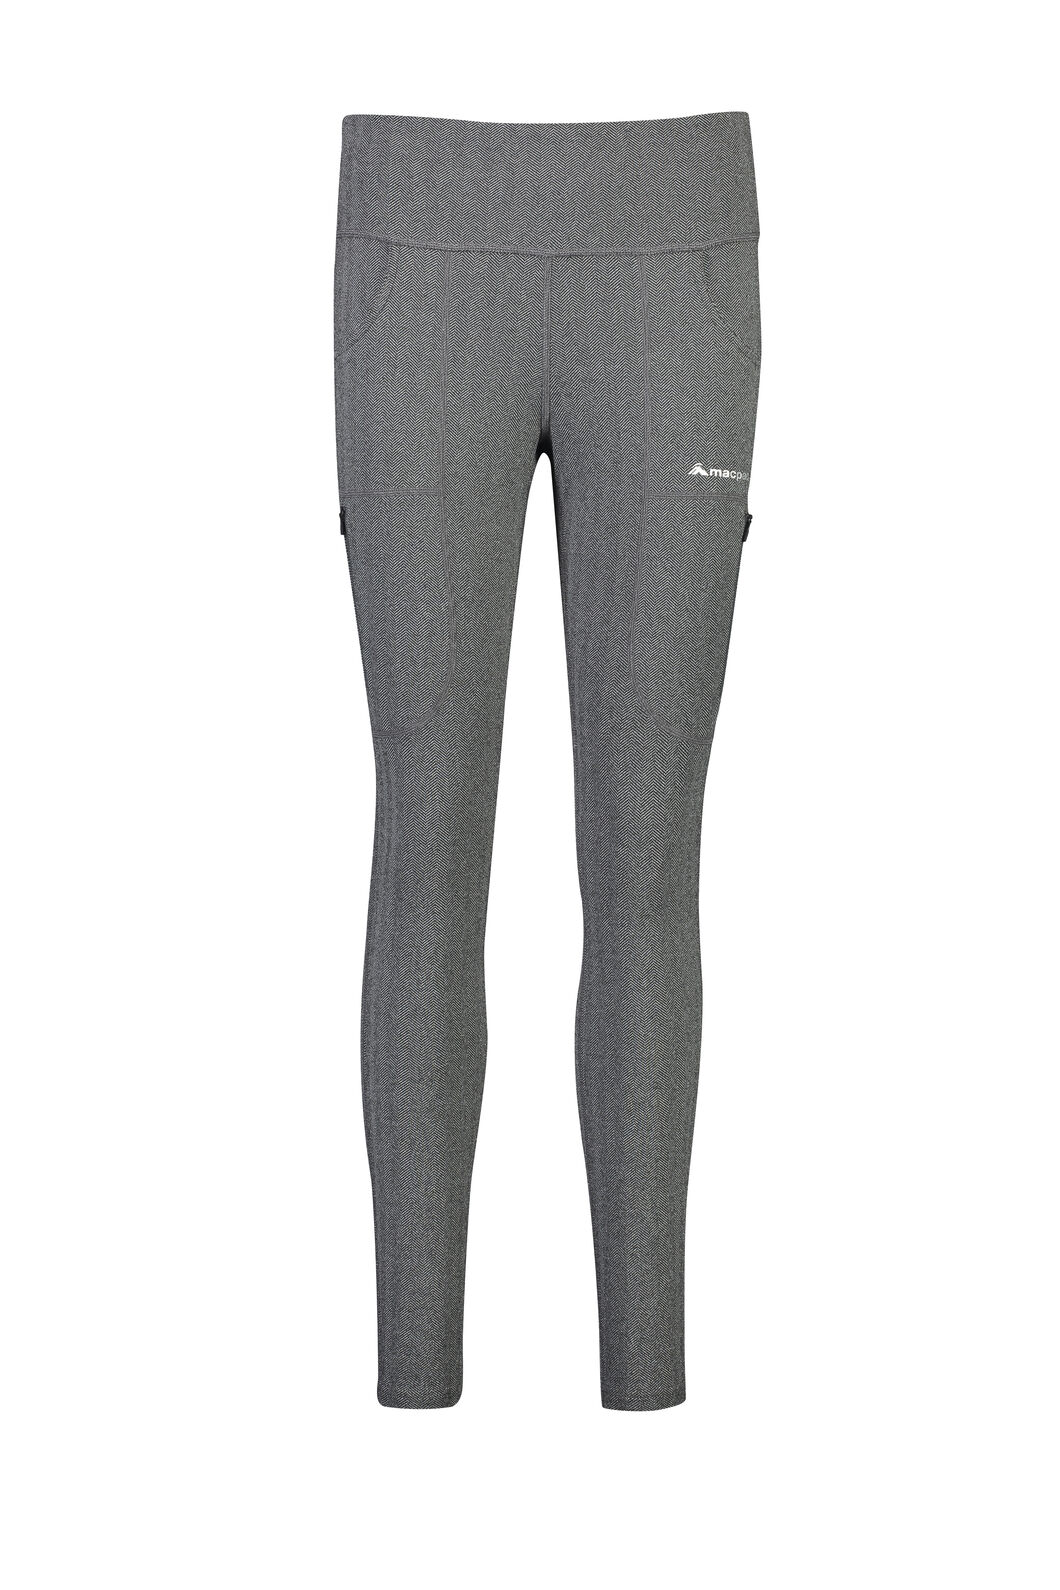 Macpac Wander Tights — Women's, Chariak, hi-res